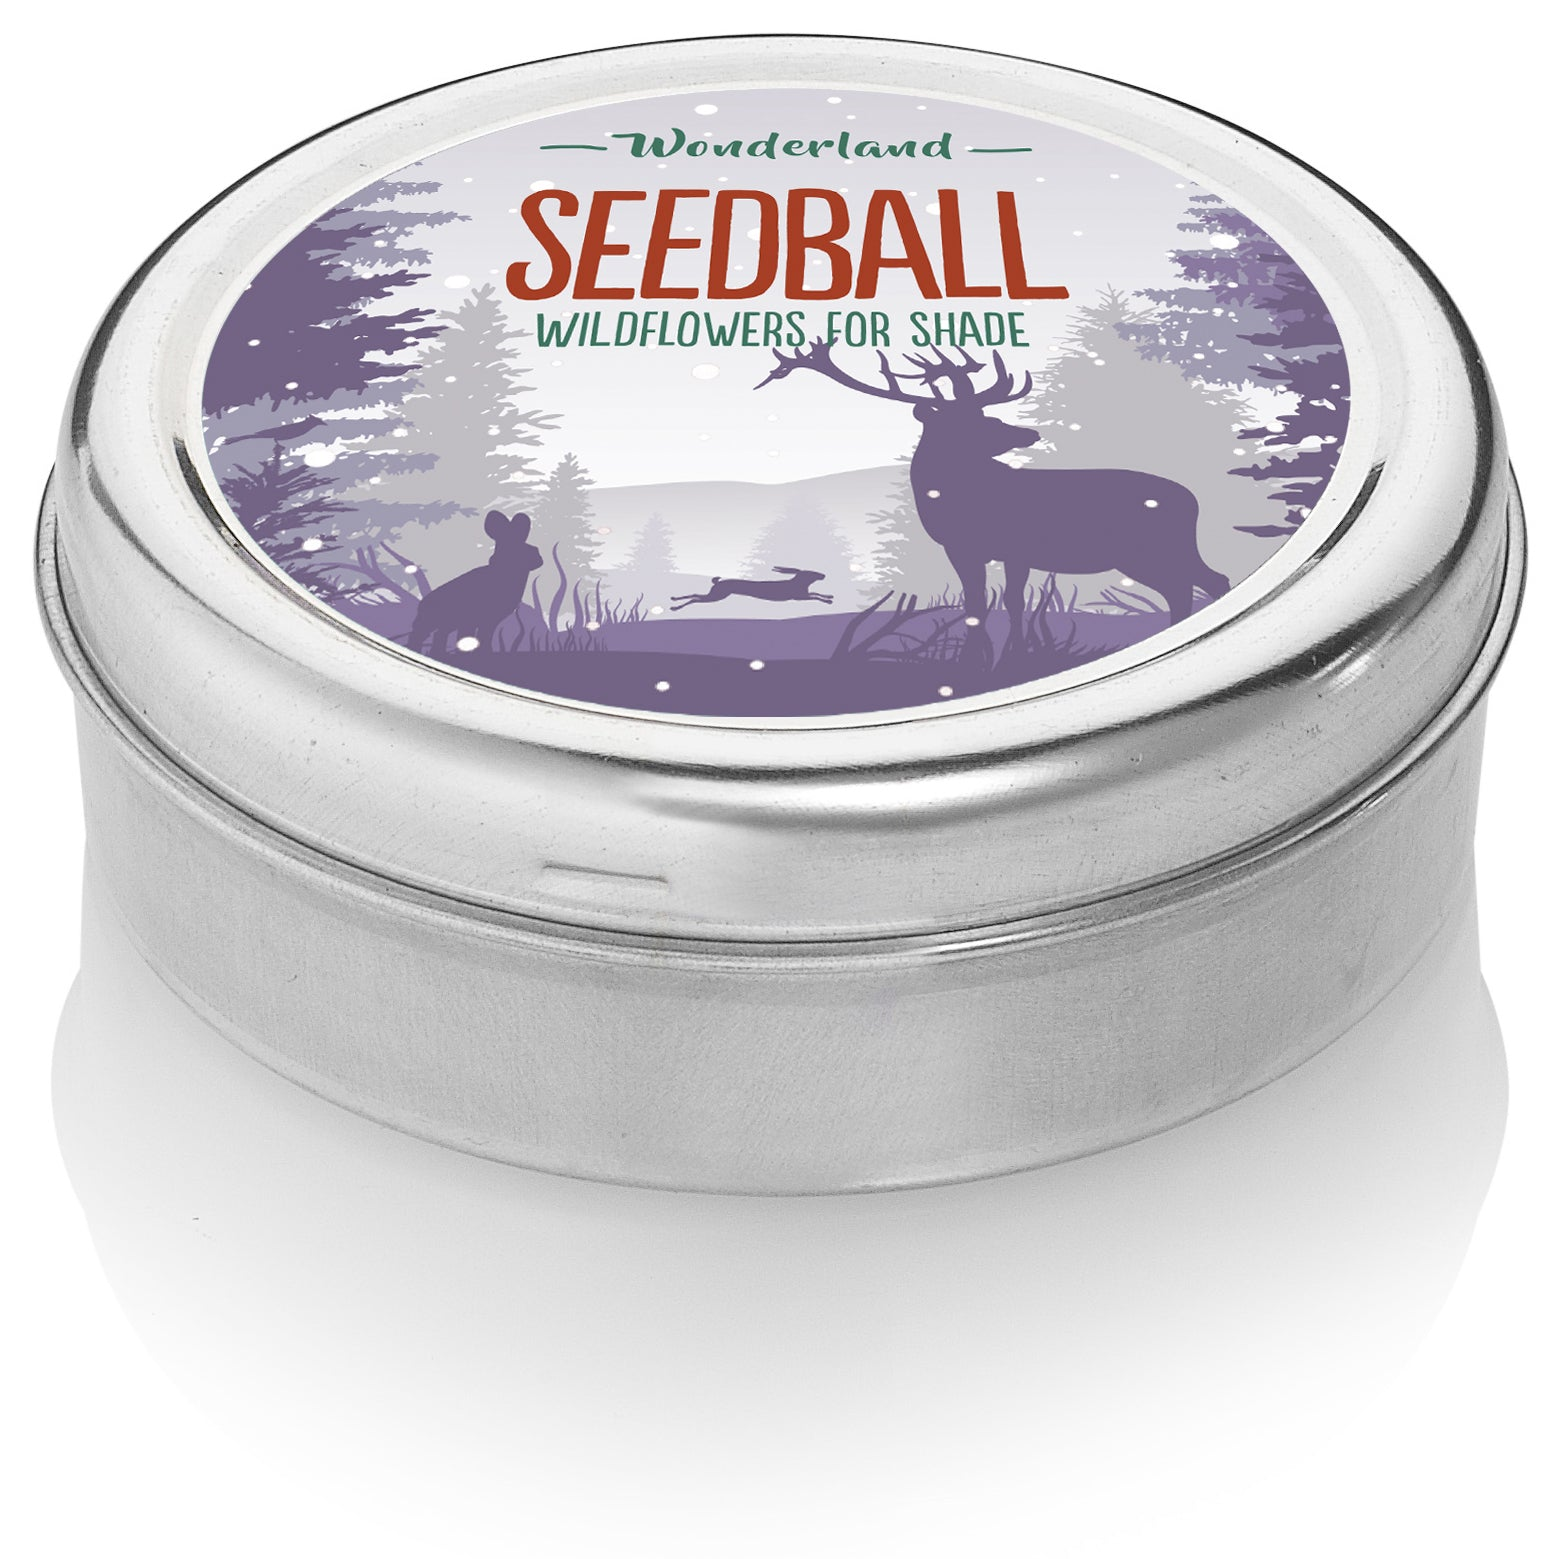 Seedball - Wonderland